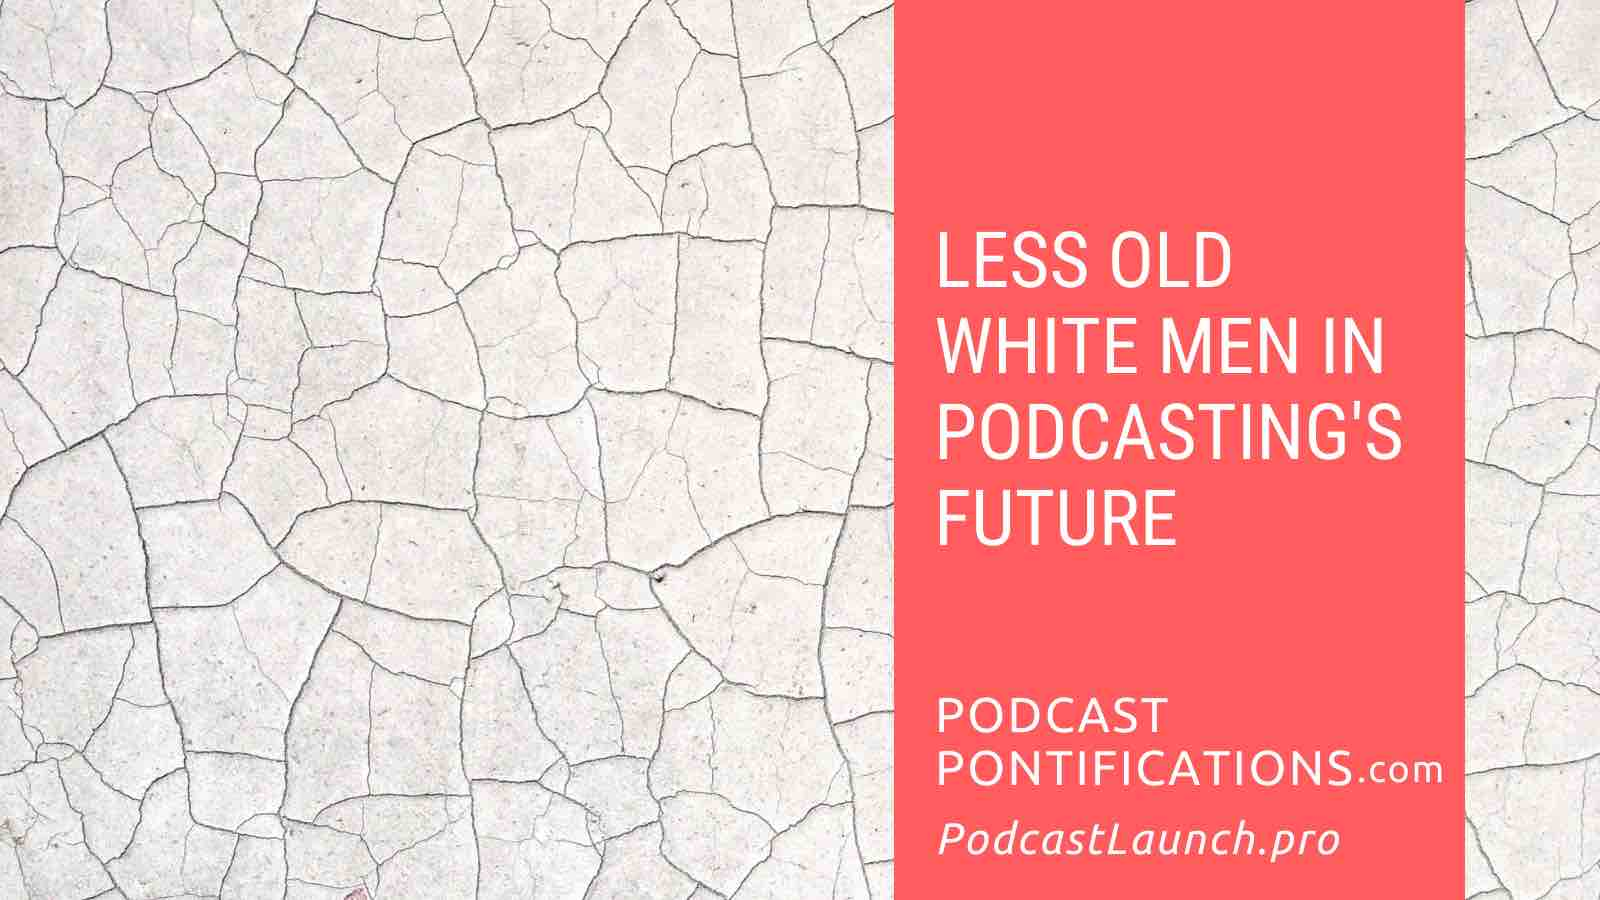 Less Old White Men In Podcasting's Future